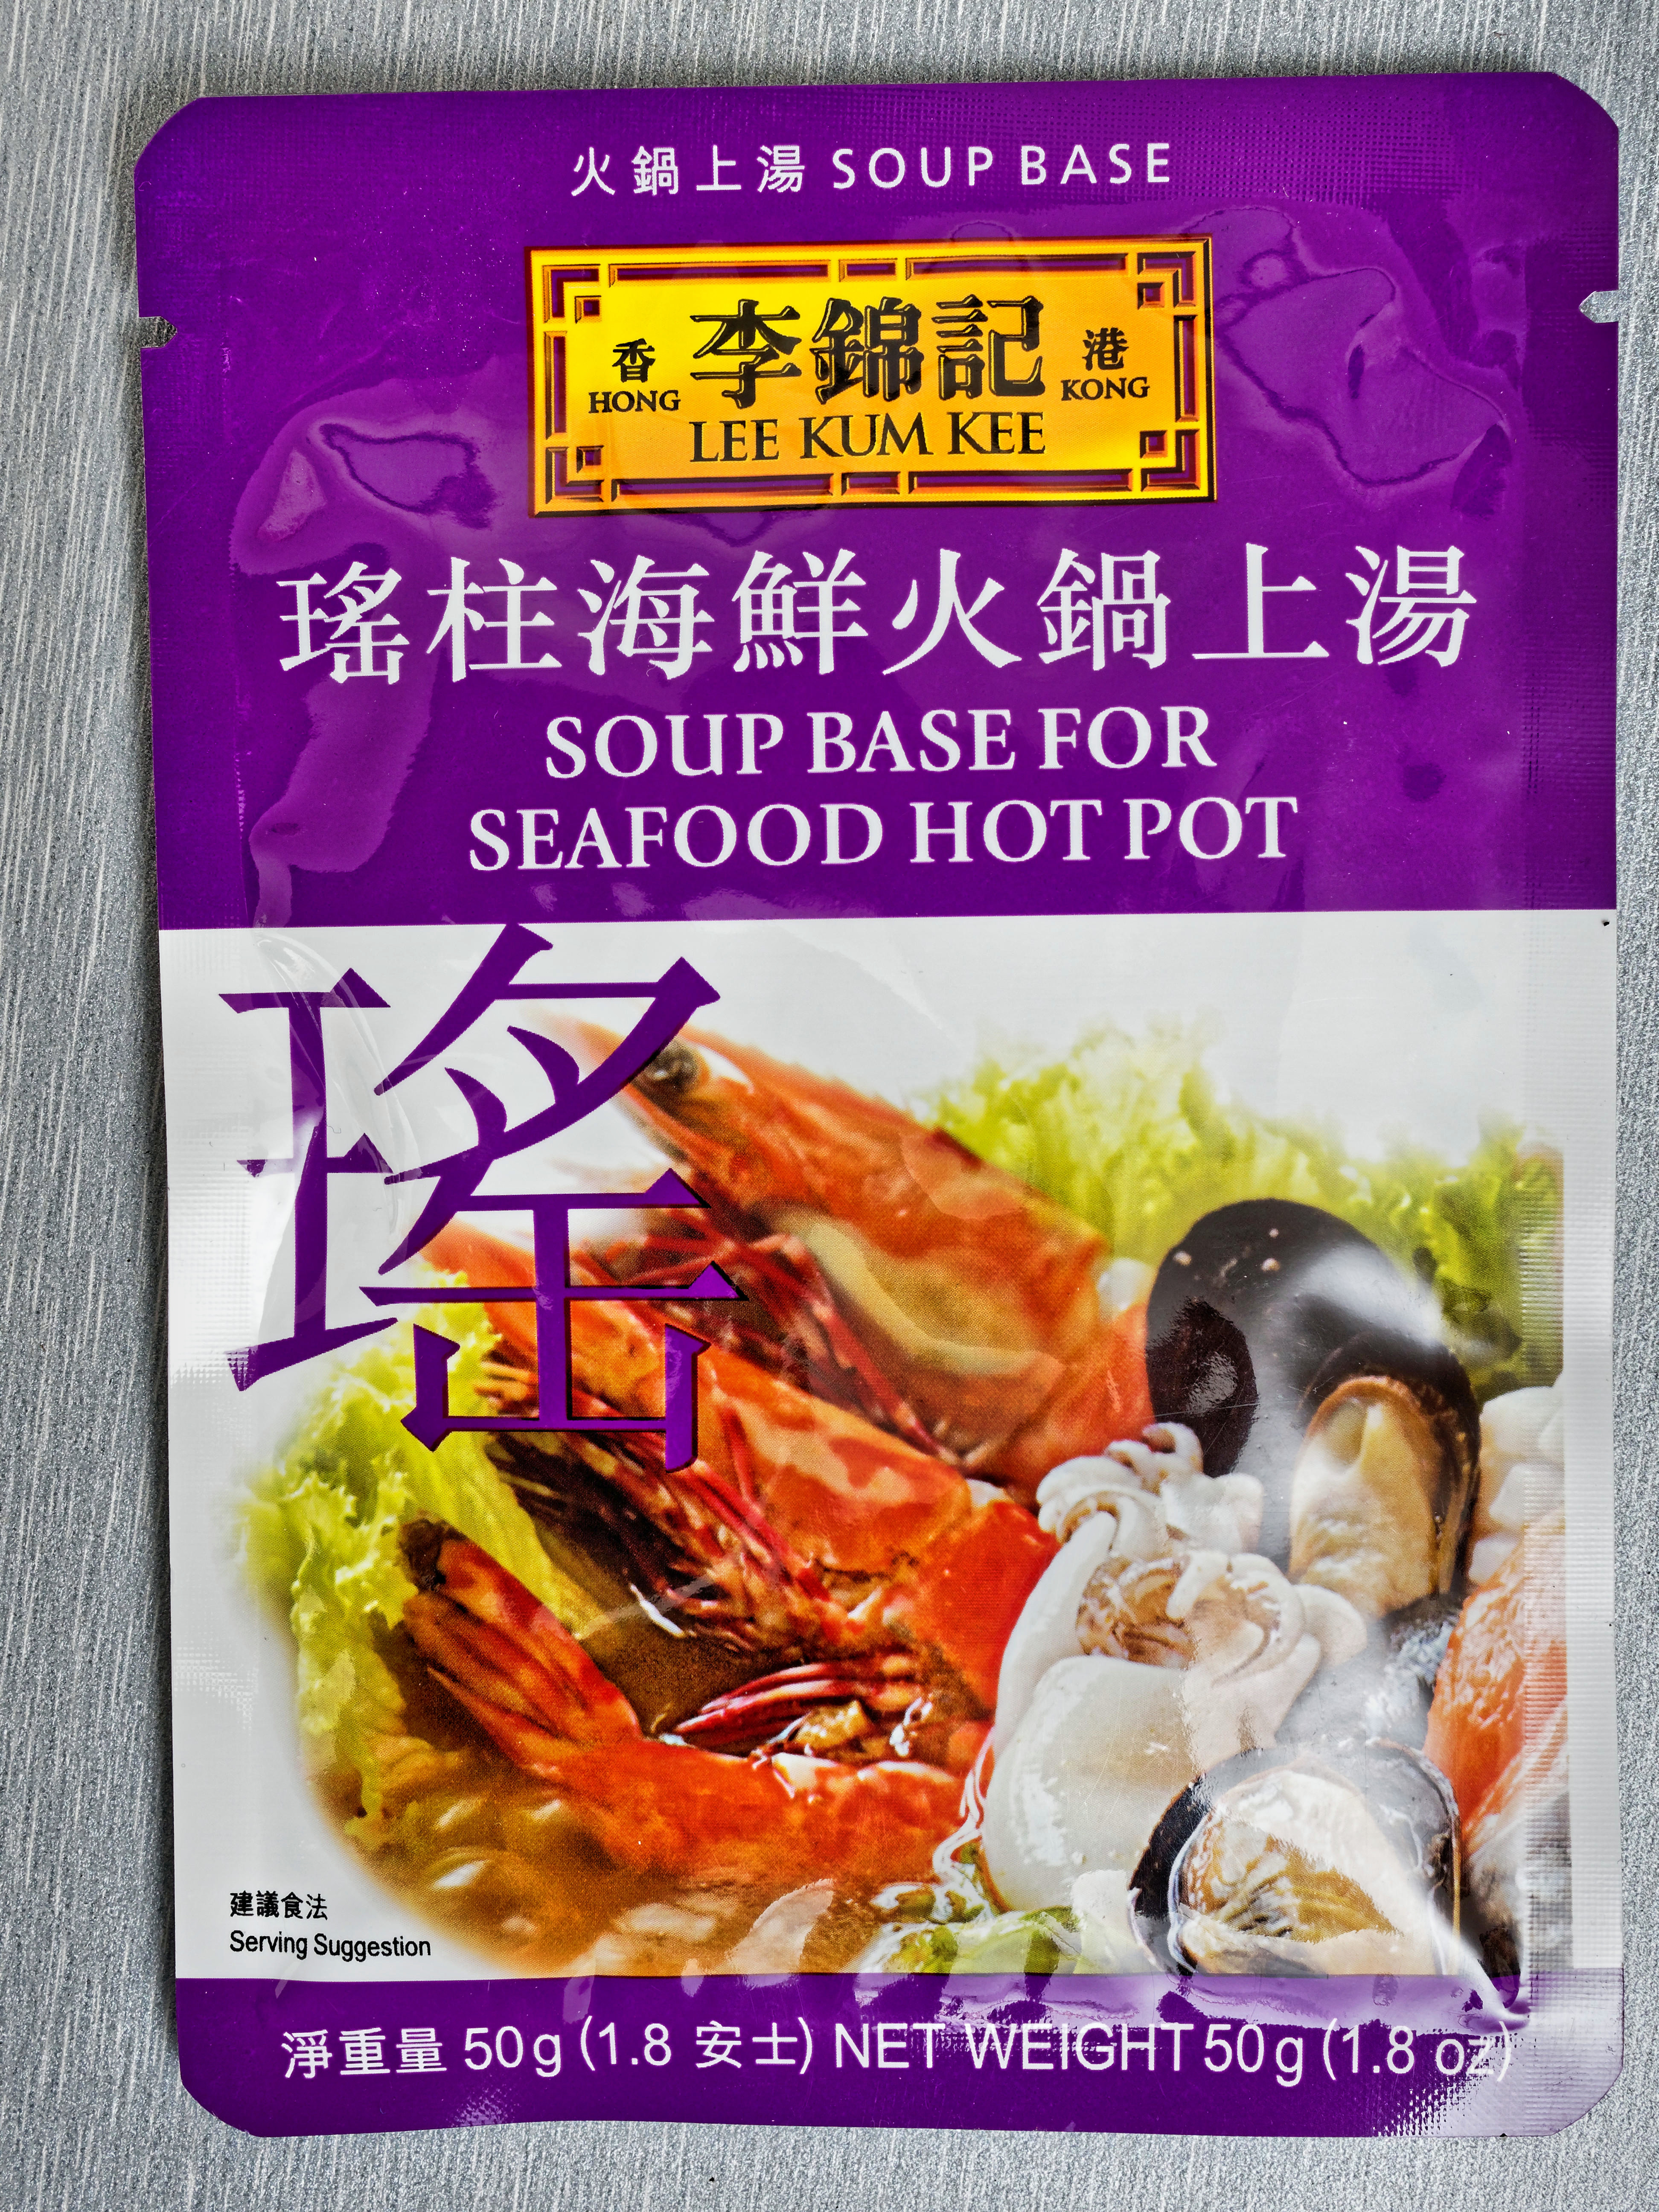 Lee-Kum-Kee-seafood-hot-pot-base-1.jpeg